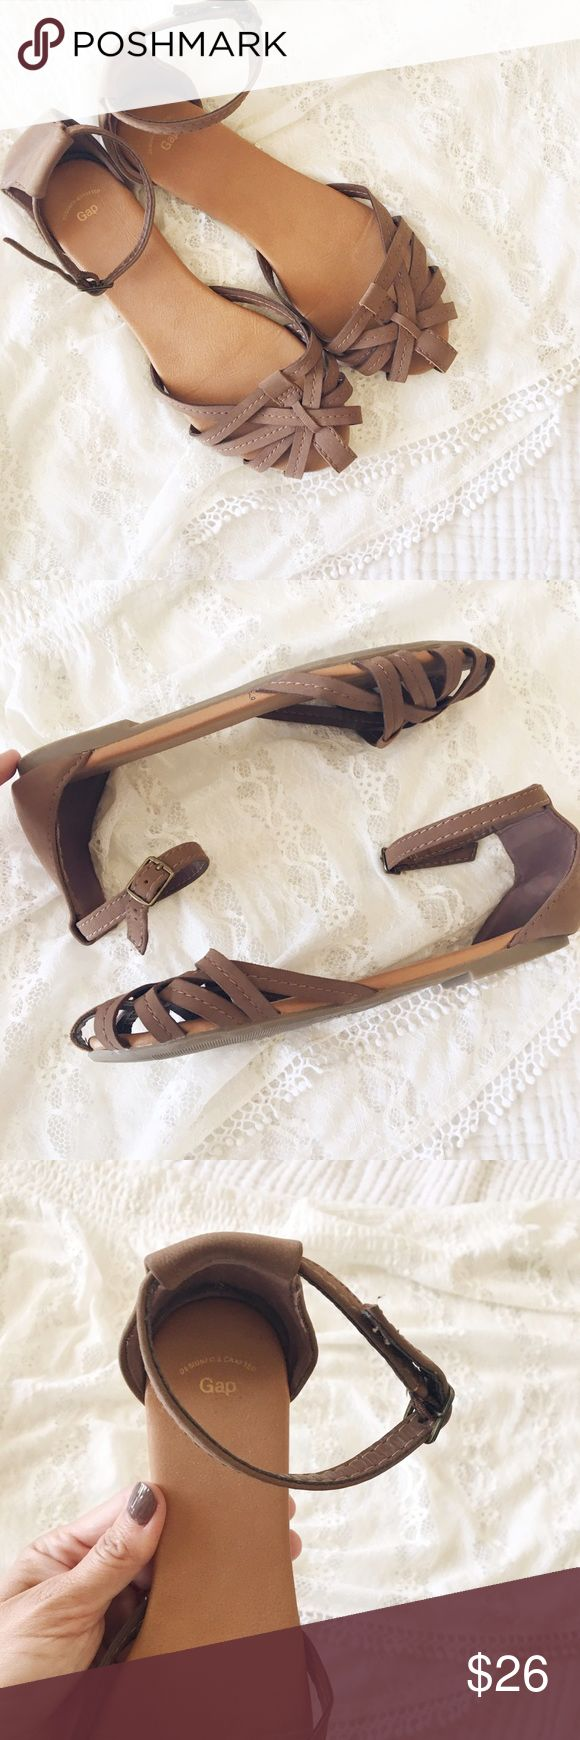 BOGO Gap Leather Pretty Summer Sandal Flats 🍑 Size 7 🍑 Brown 🍑 Worn Once 🍑 Price is FIRM unless bundled  ✨ All items from a smoke free home  ✨ Please ask questions prior to purchase GAP Shoes Flats & Loafers